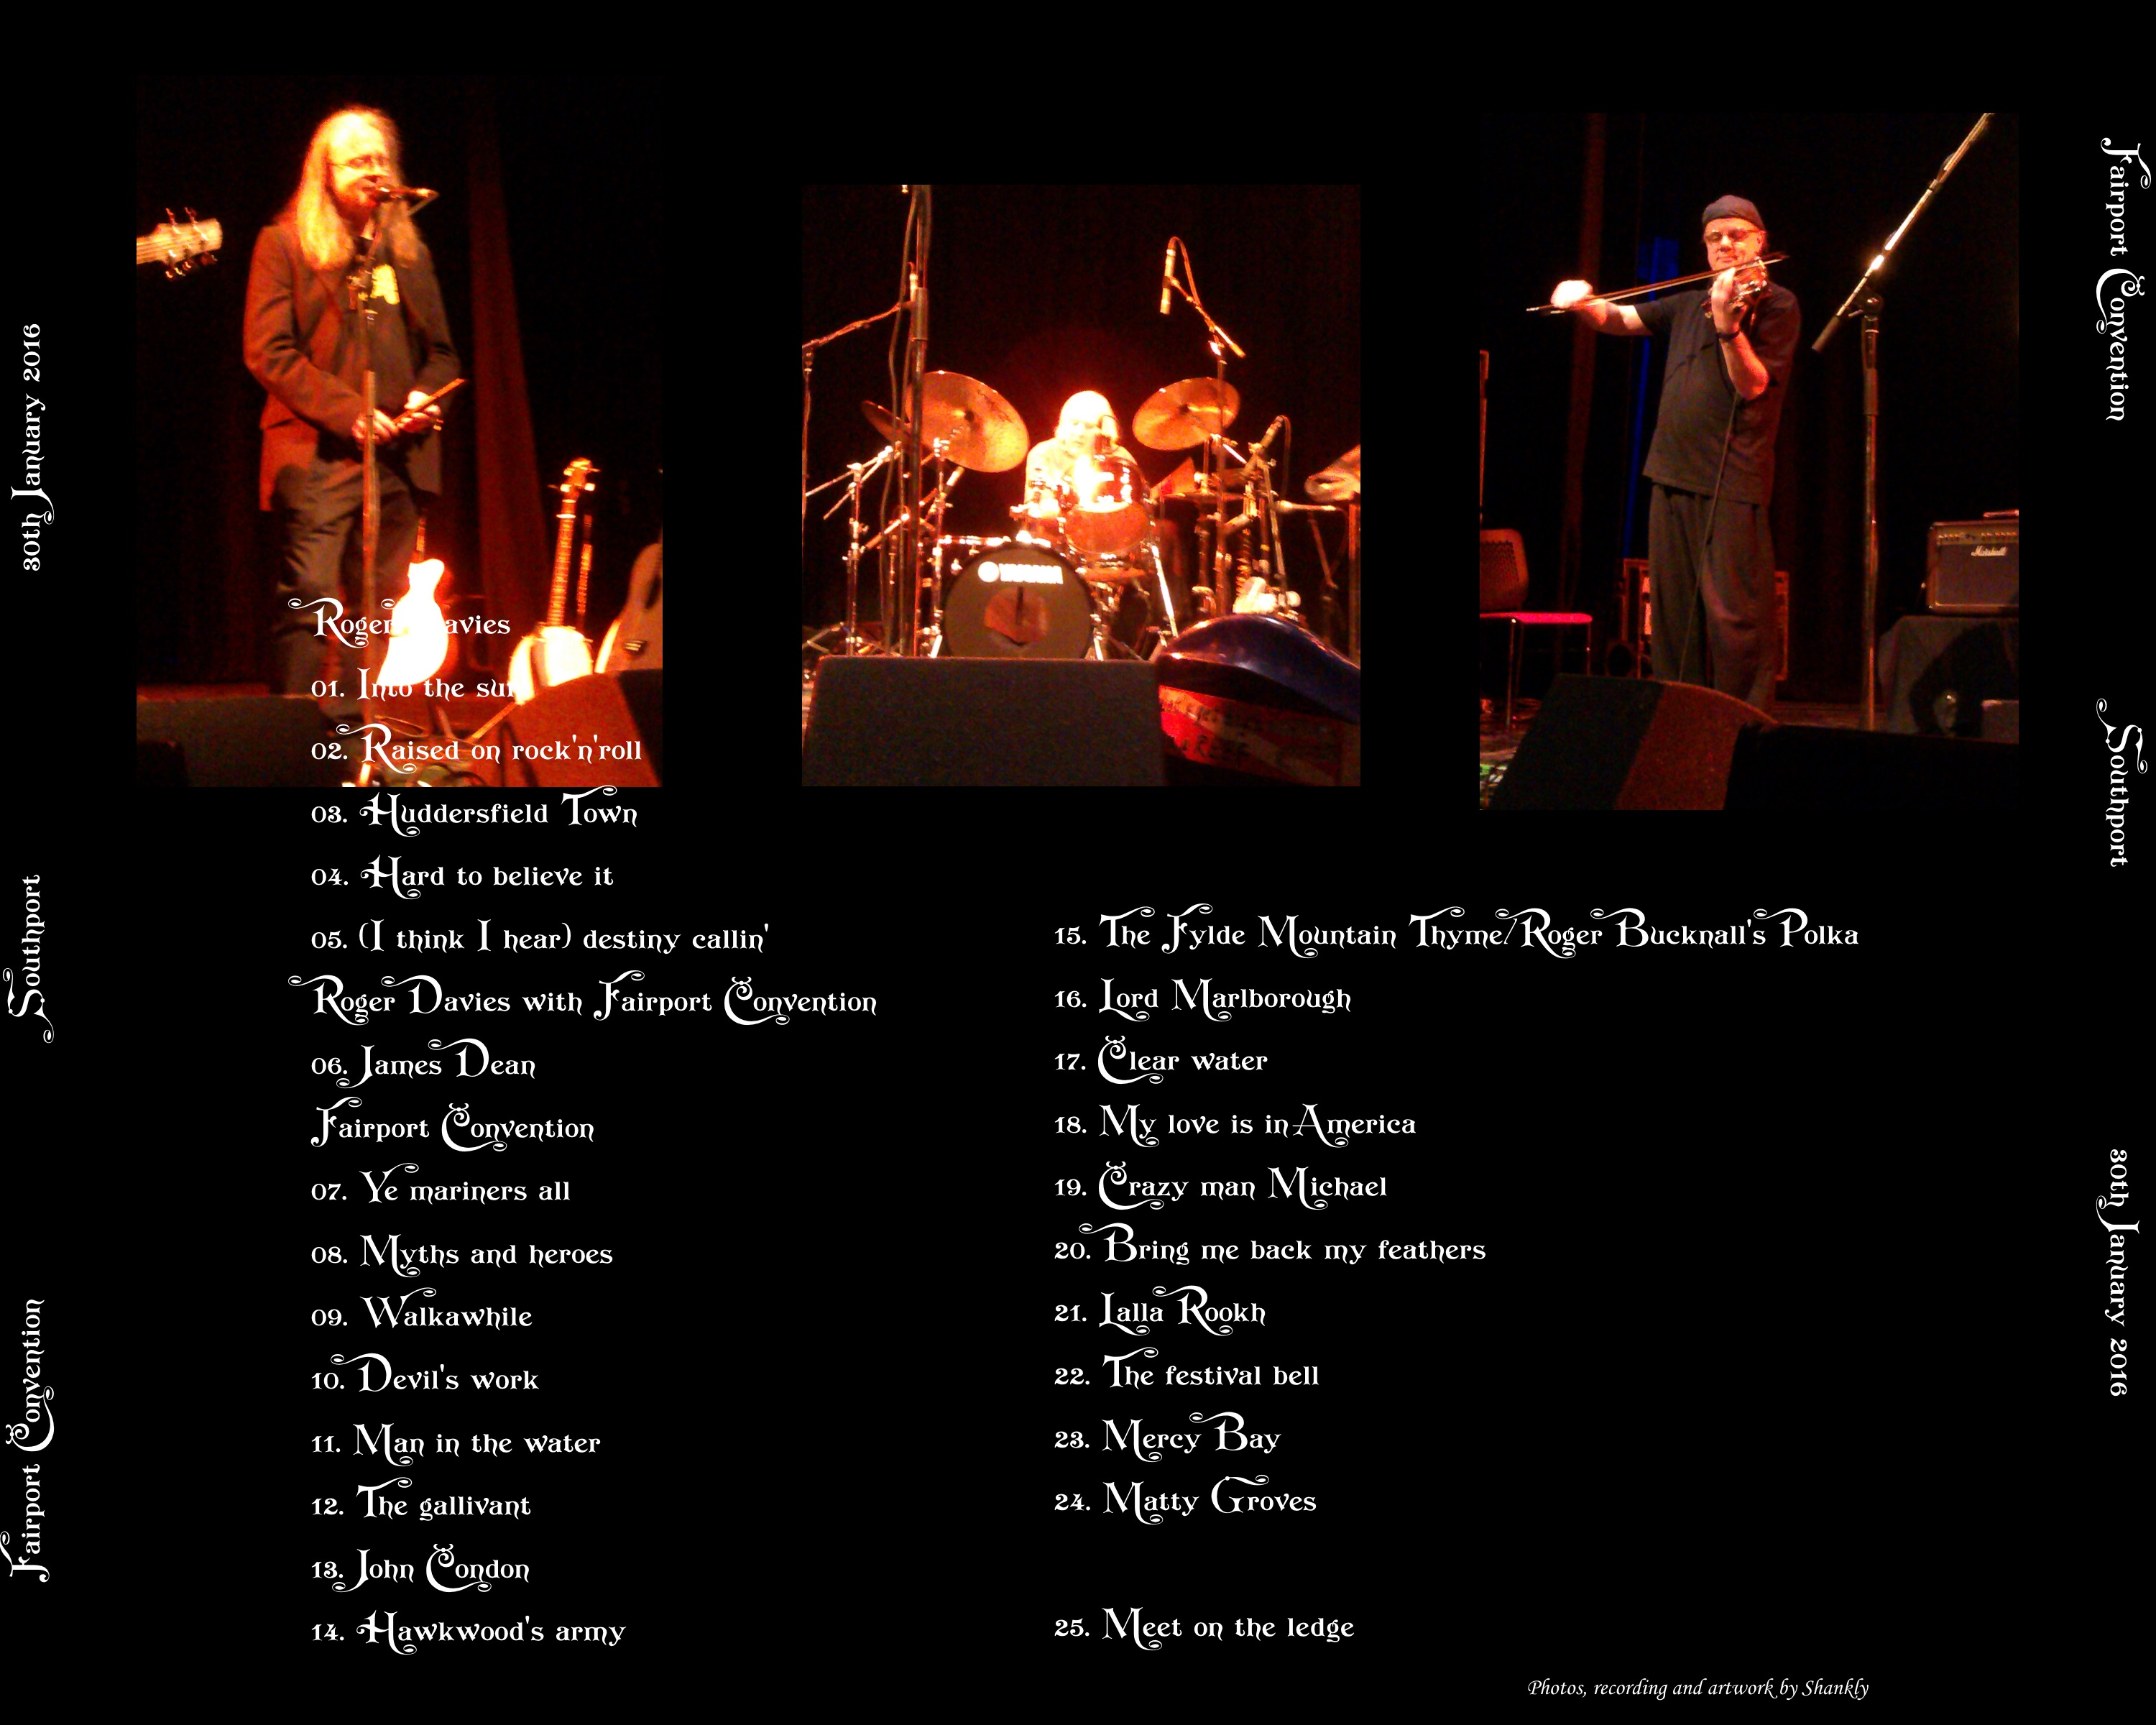 FairportConvention2016-01-30TheAtkinsonSouthportUK (1).jpg